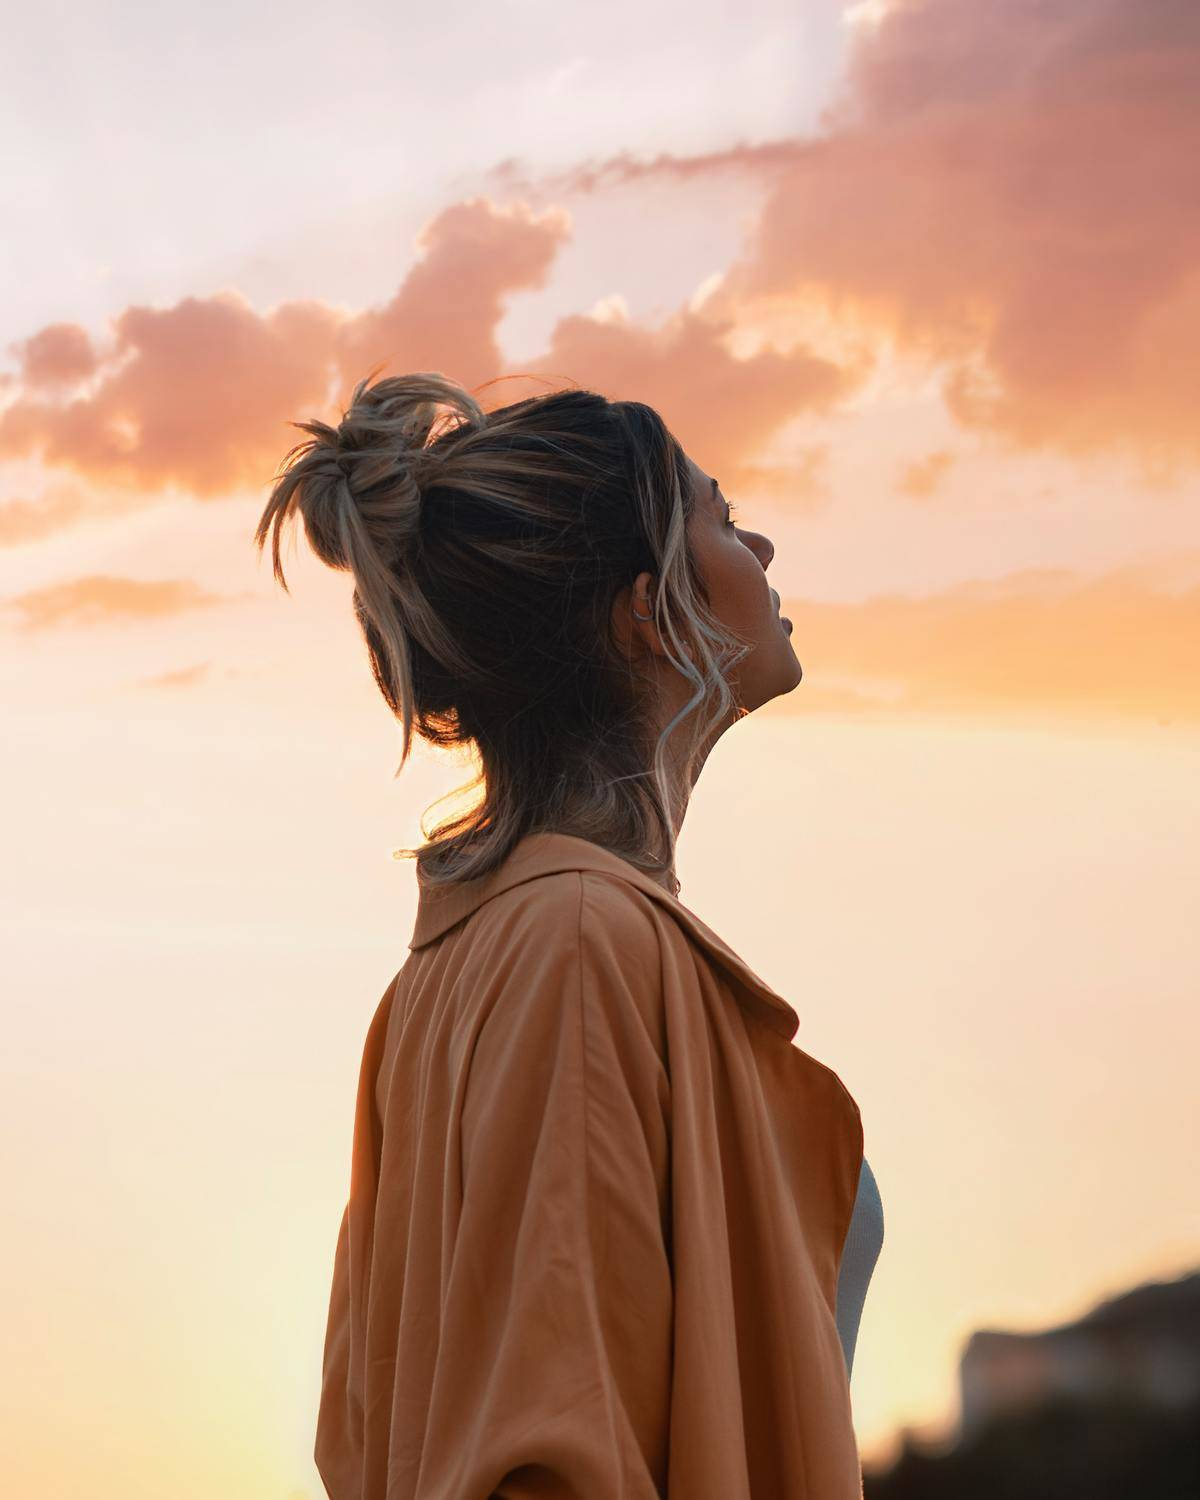 woman looking up at a sunset